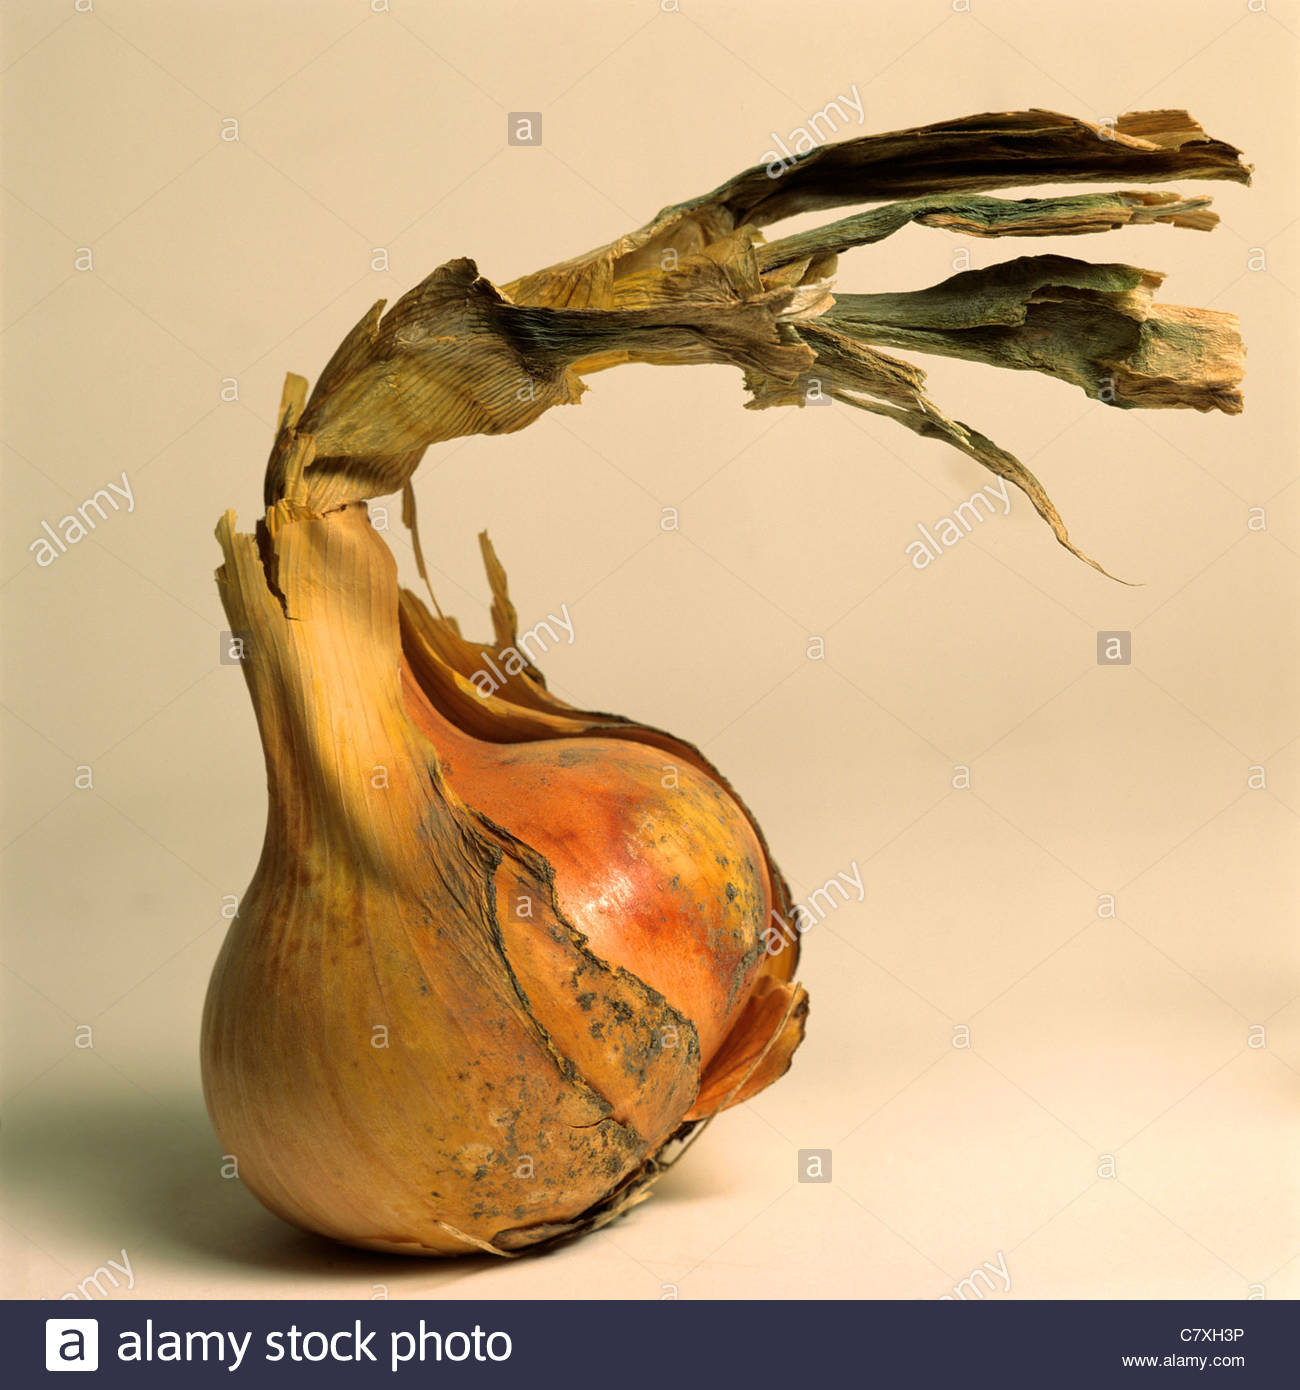 Onion with peeling skin - Stock Image